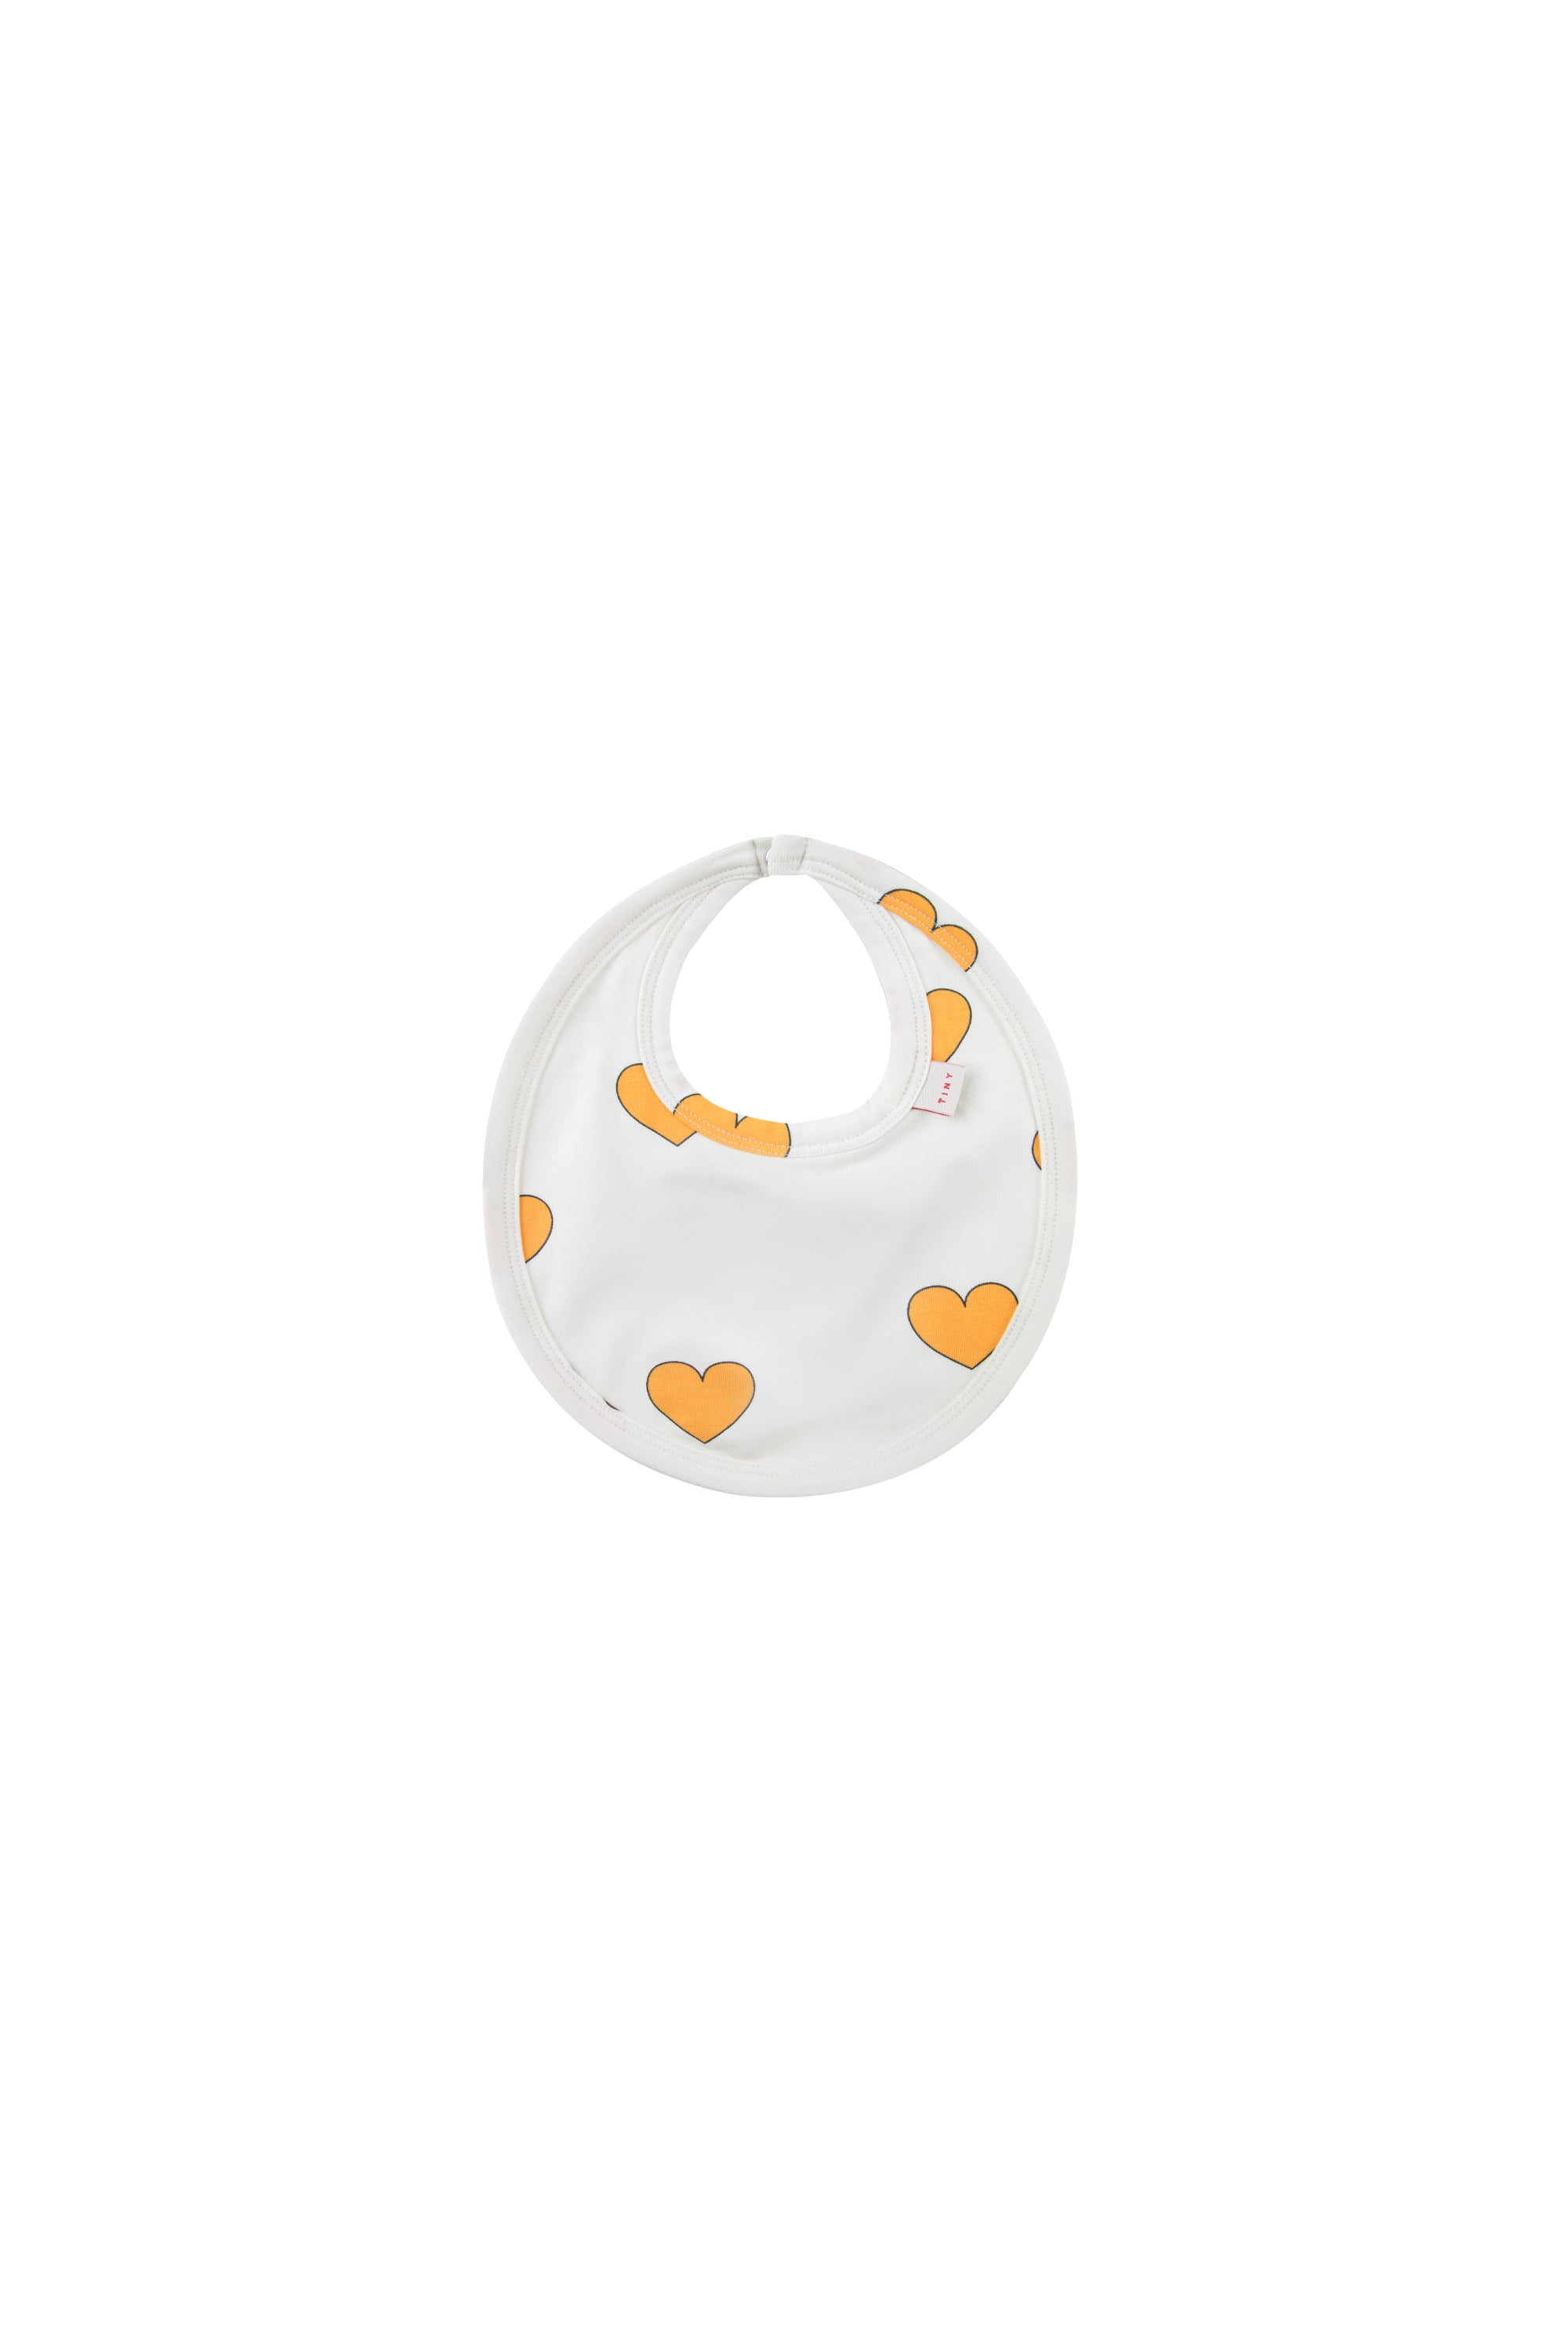 Tiny Cottons Hearts Bib Off White/Yellow